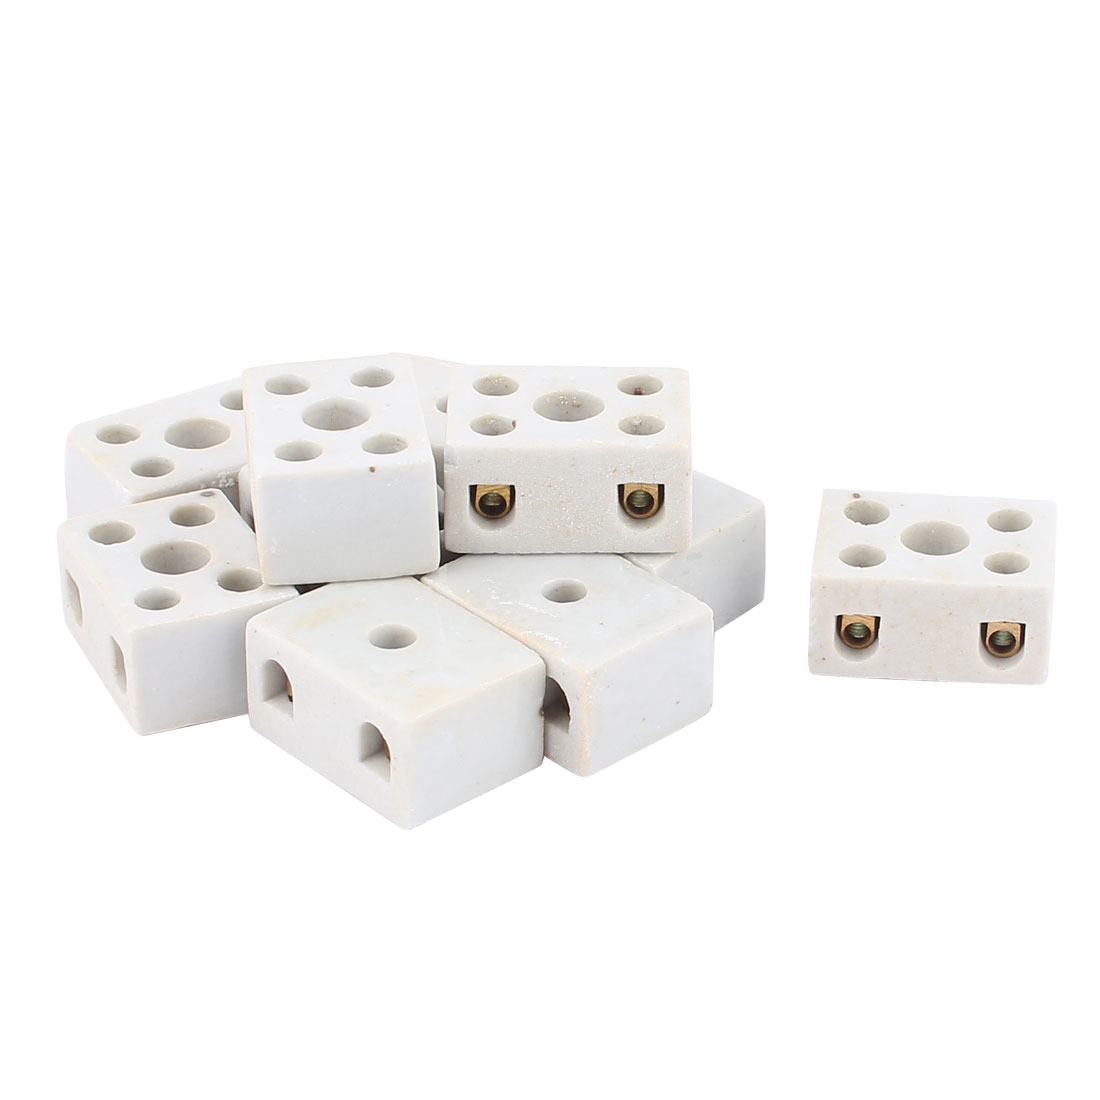 5A 2W5H 2 Way 5 Hole Ceramic Connector Porcelain Terminal Block 10pcs